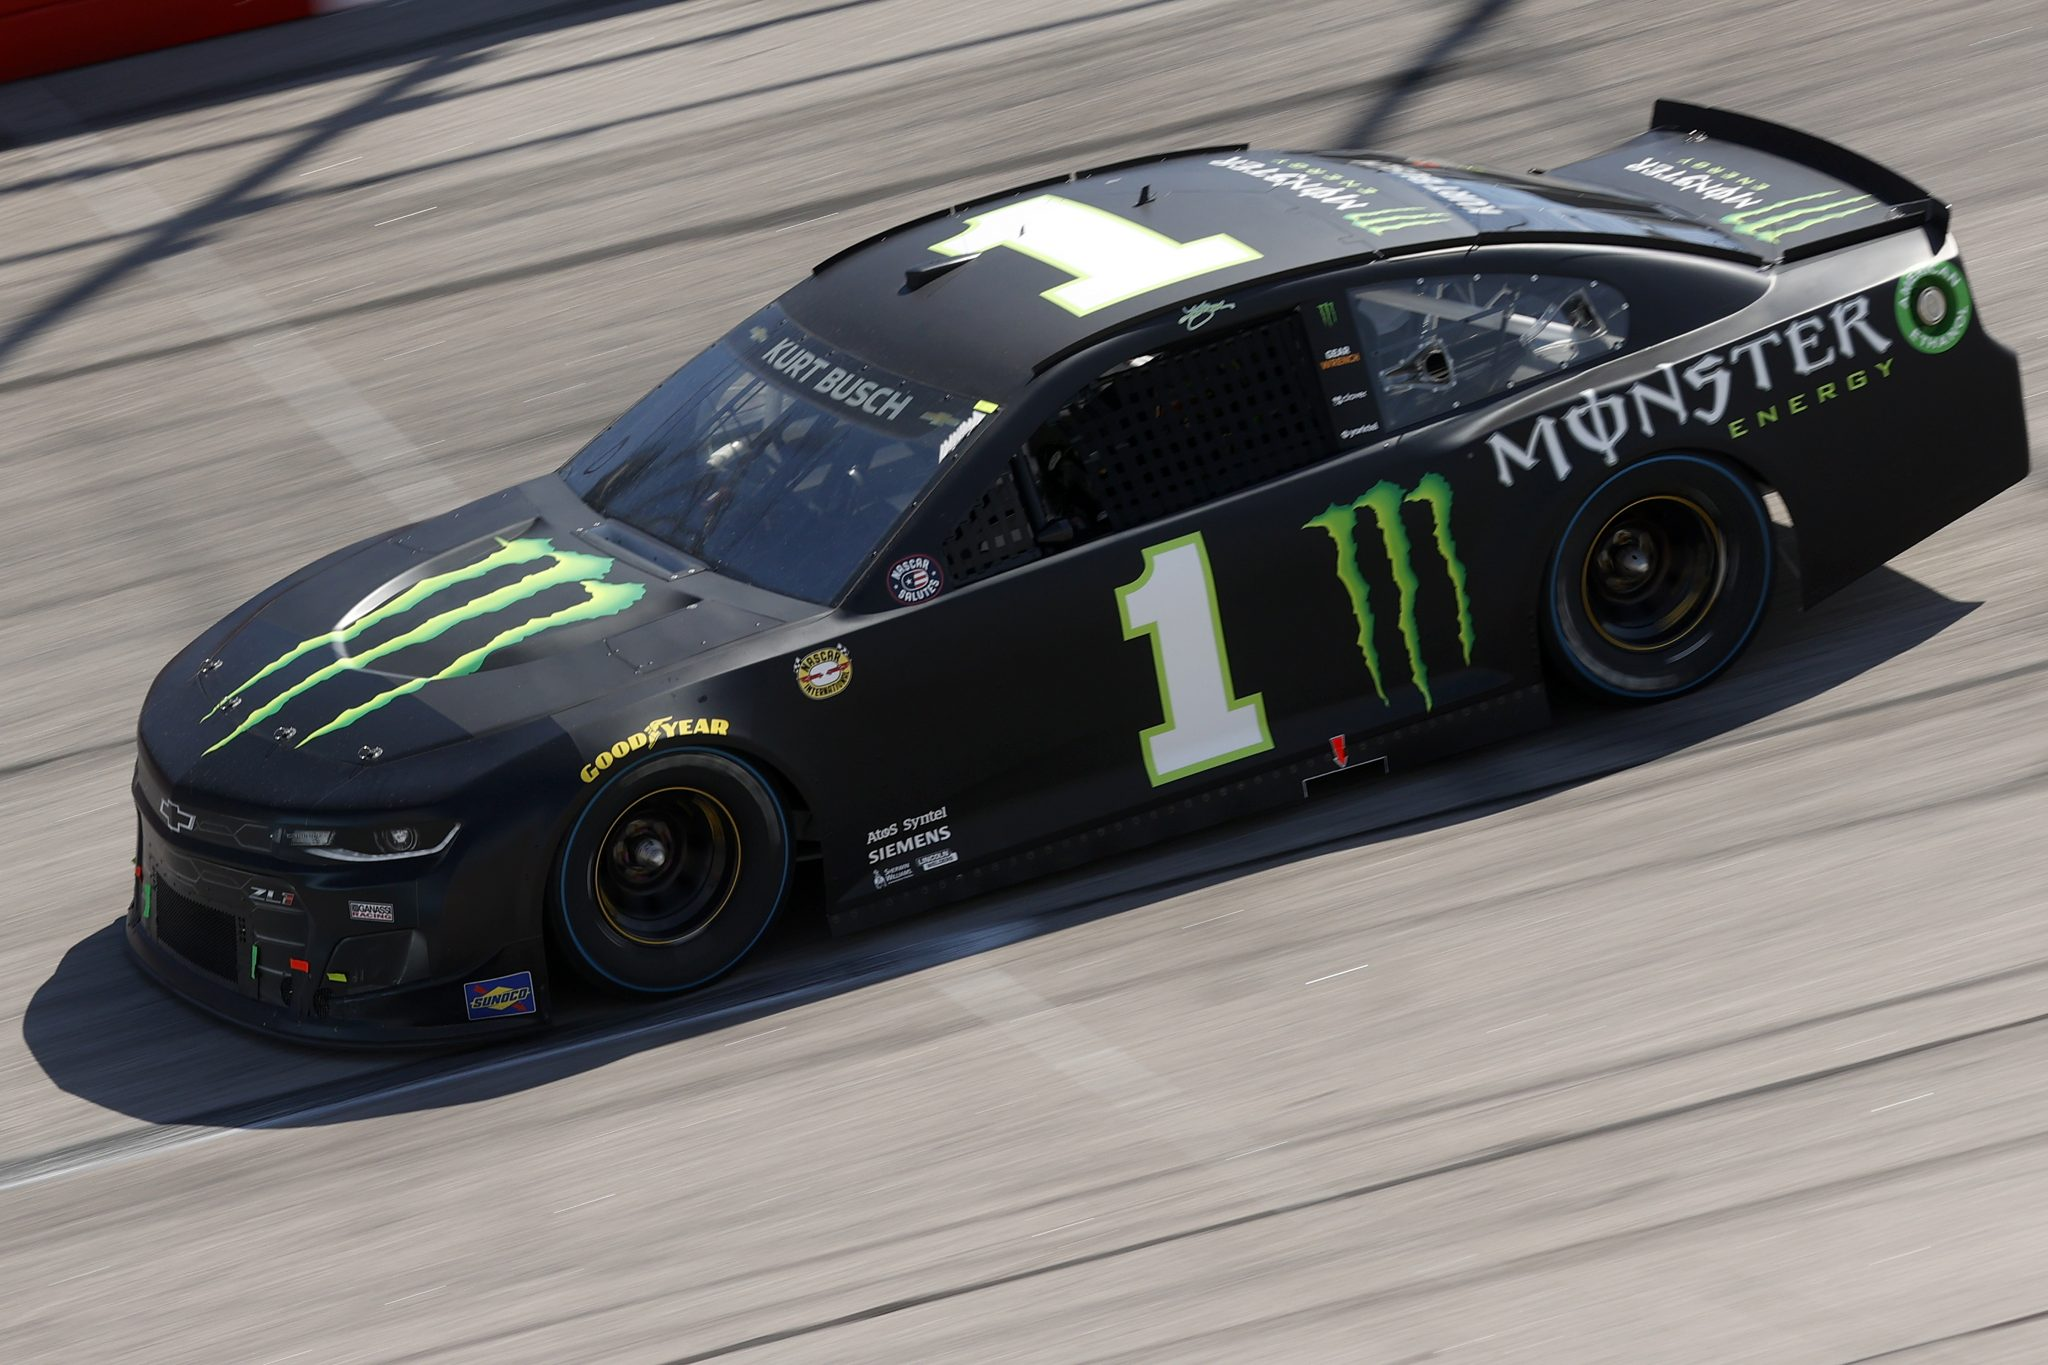 DARLINGTON, SOUTH CAROLINA - MAY 09: Kurt Busch, driver of the #1 Monster Energy Chevrolet, drives during the NASCAR Cup Series Goodyear 400 at Darlington Raceway on May 09, 2021 in Darlington, South Carolina. (Photo by Chris Graythen/Getty Images) | Getty Images